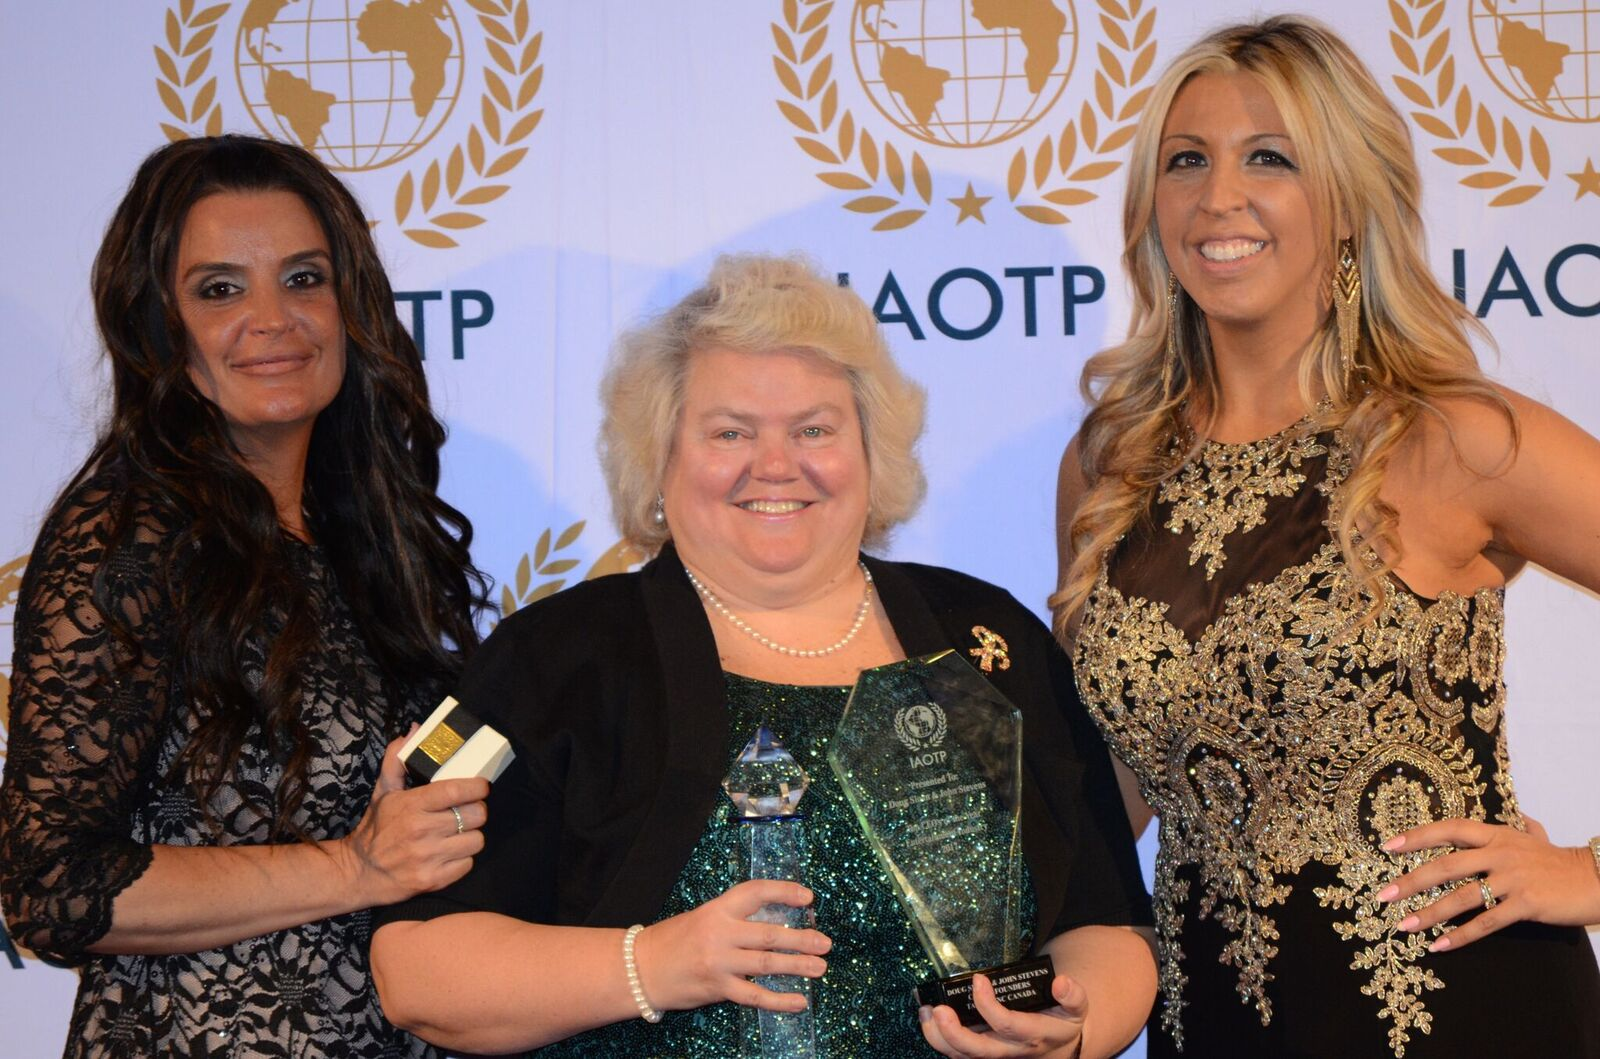 Dr. Karin Ciance selected for the Lifetime Achievement Award by the International Association of Top Professionals (IAOTP).